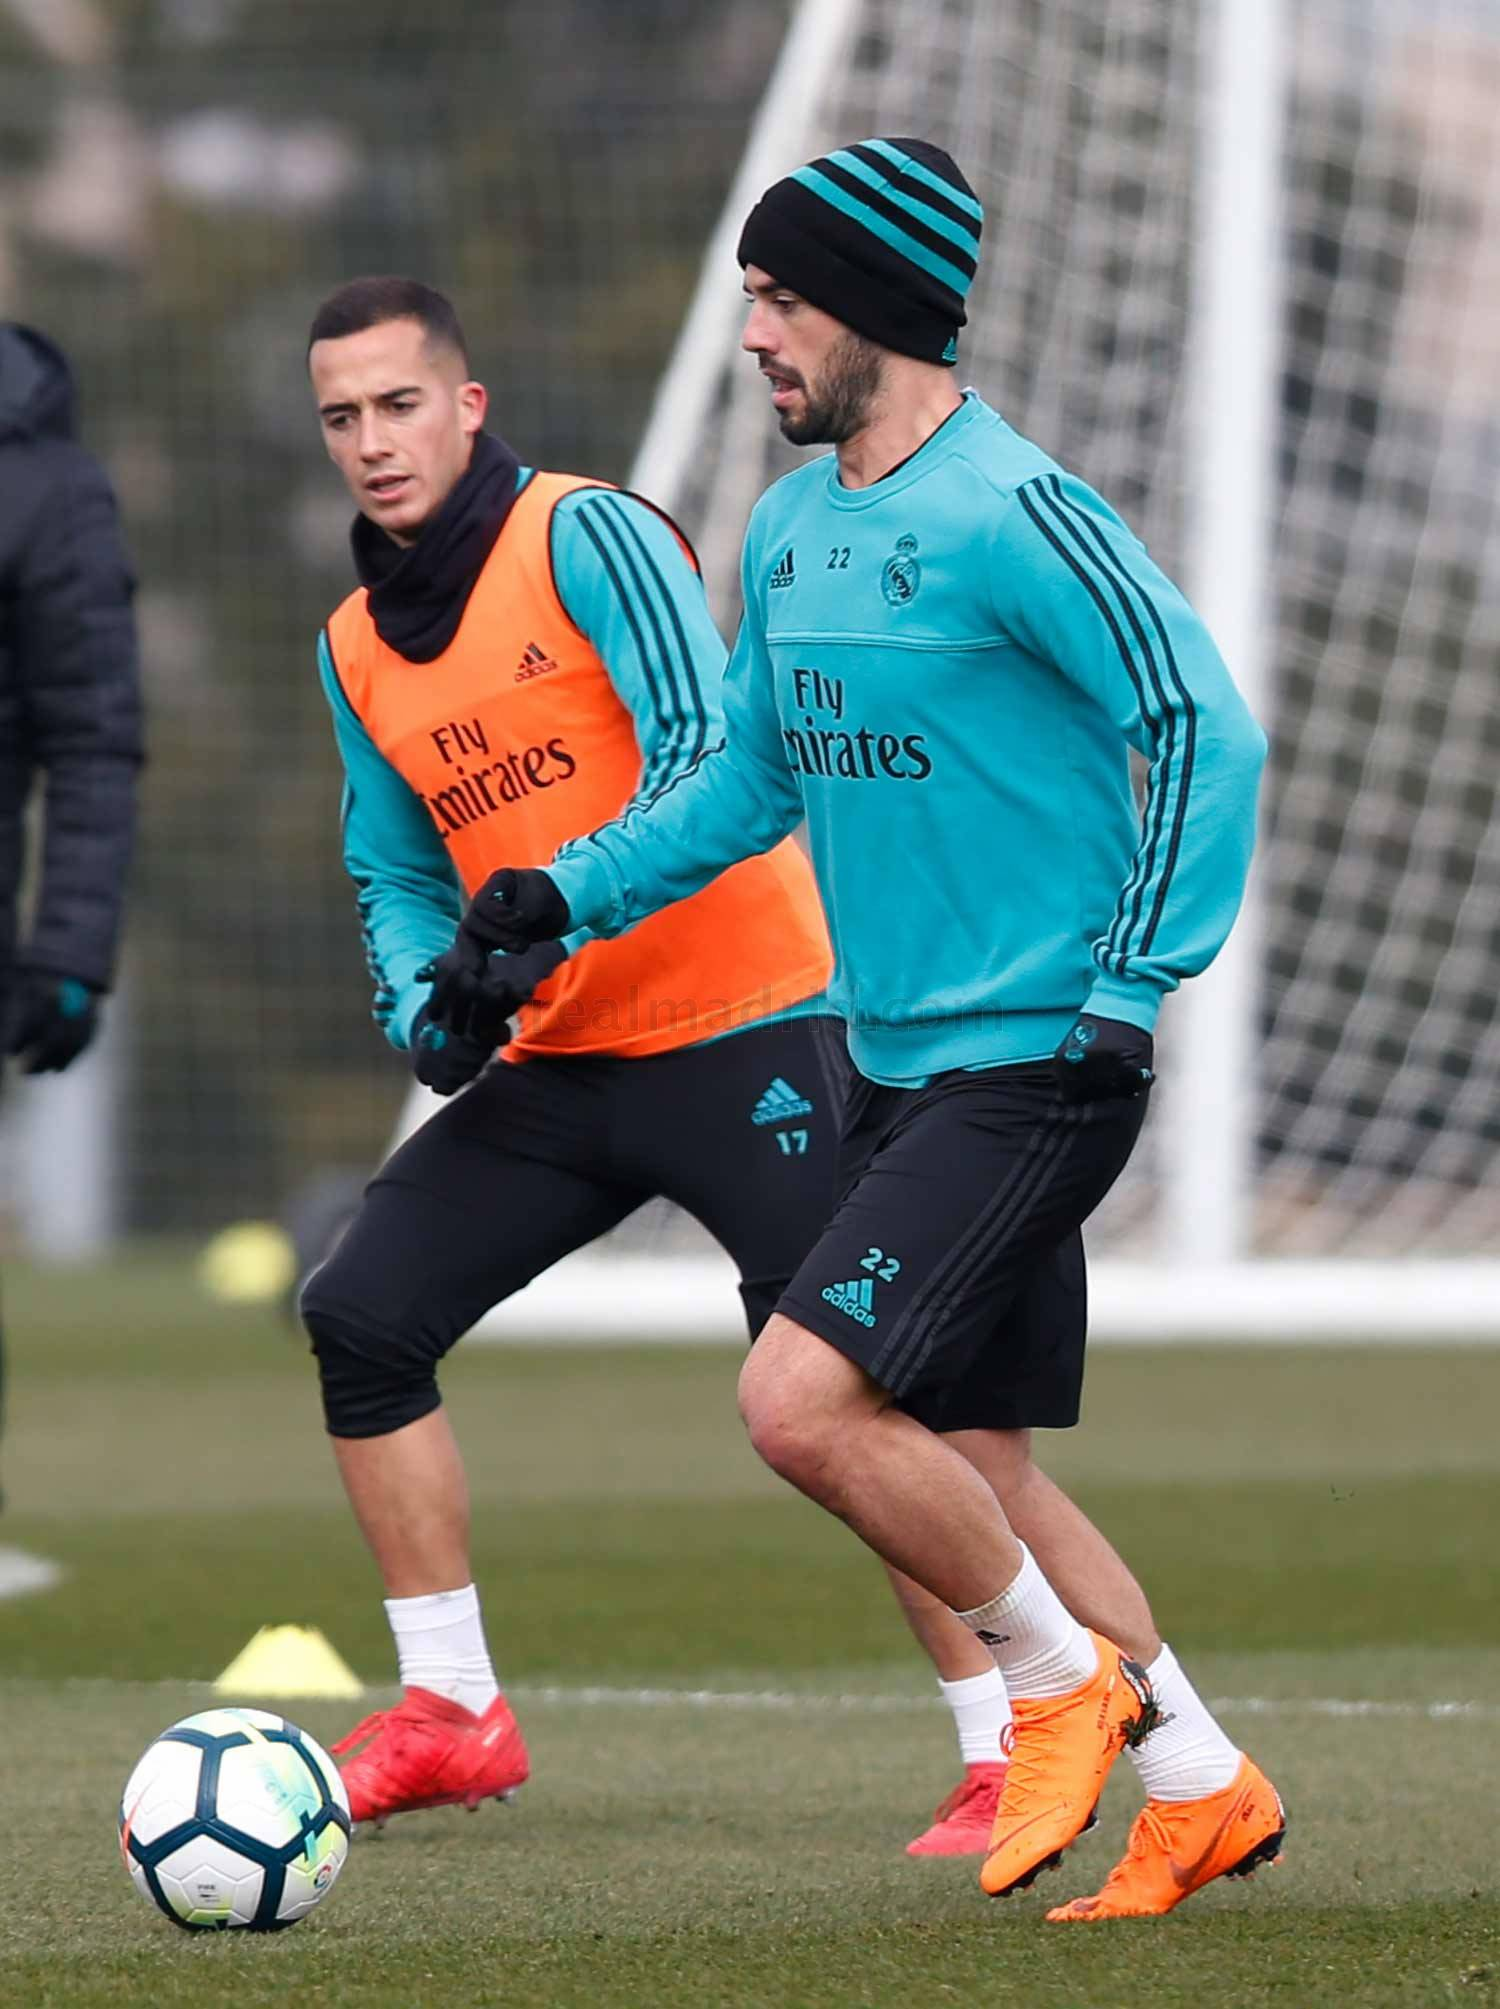 Real Madrid - Entrenamiento del Real Madrid - 16-02-2018